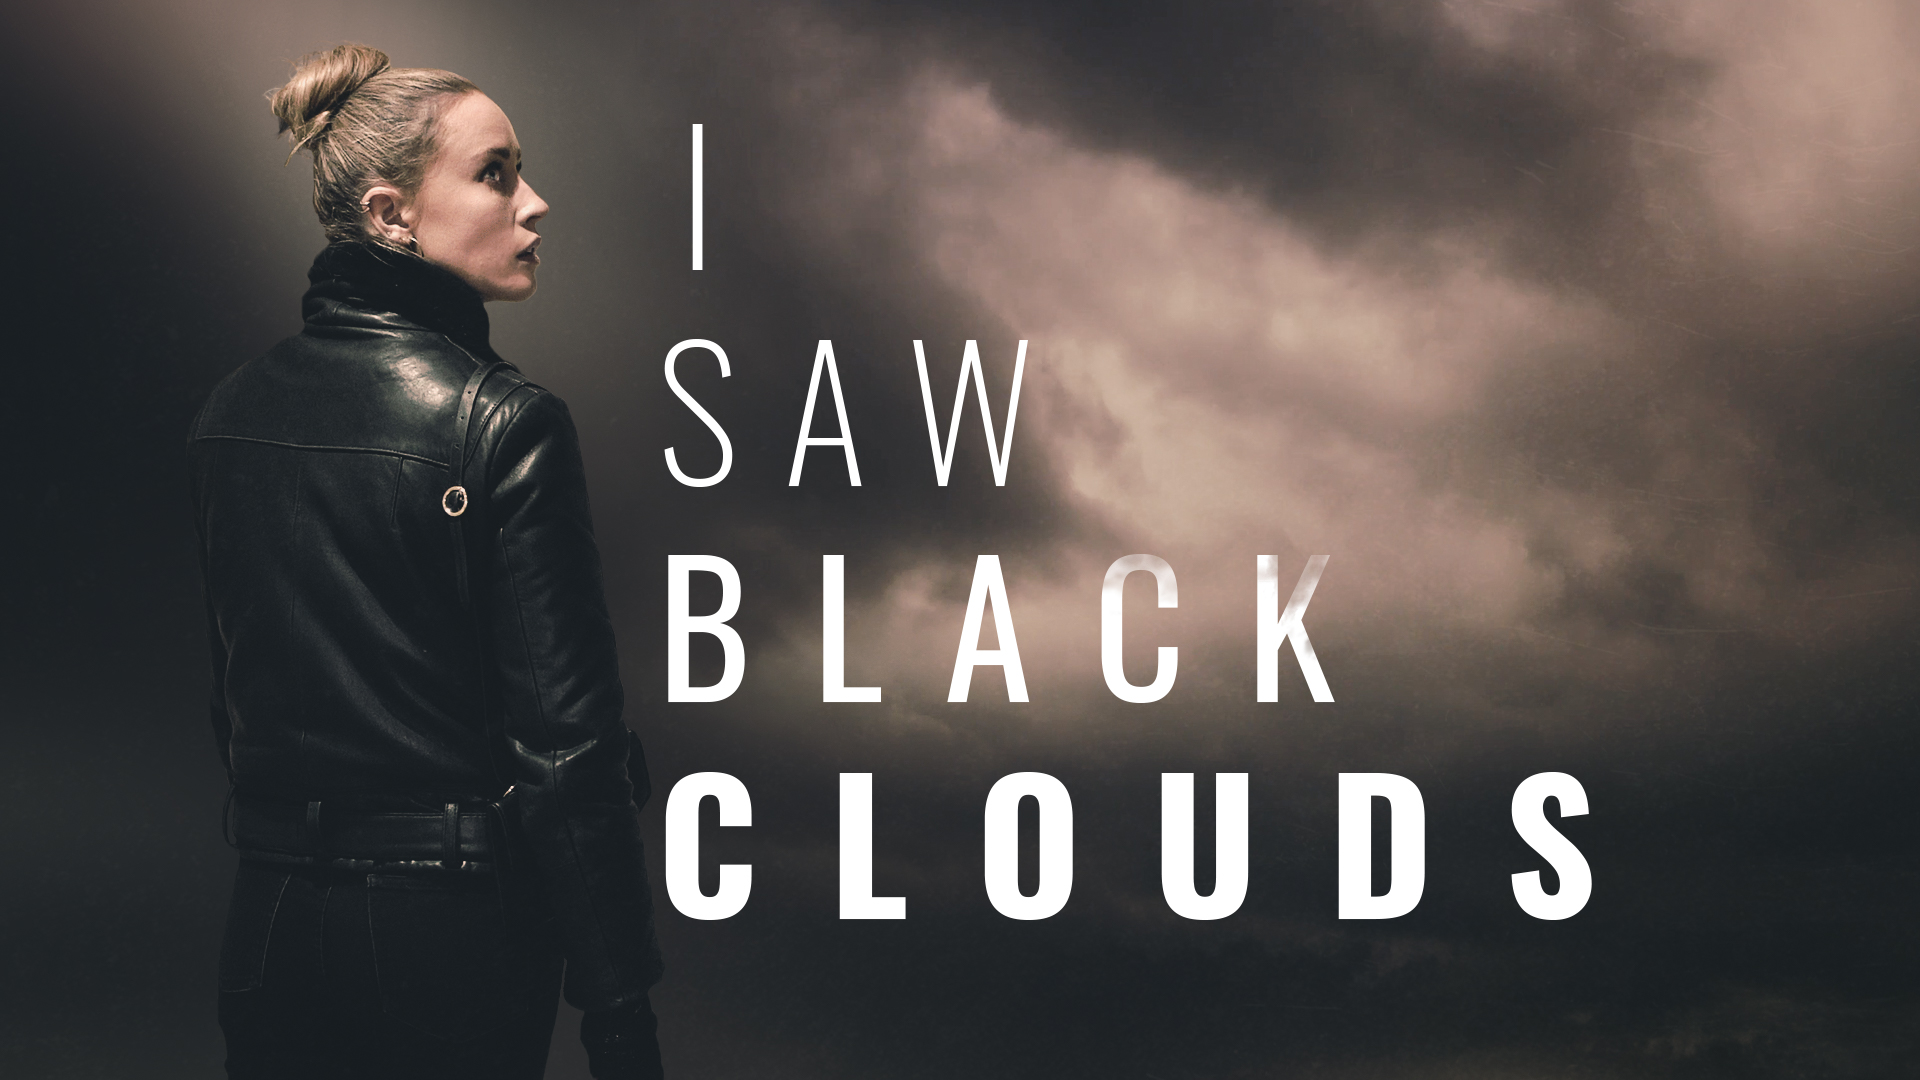 I Saw Black Clouds Review